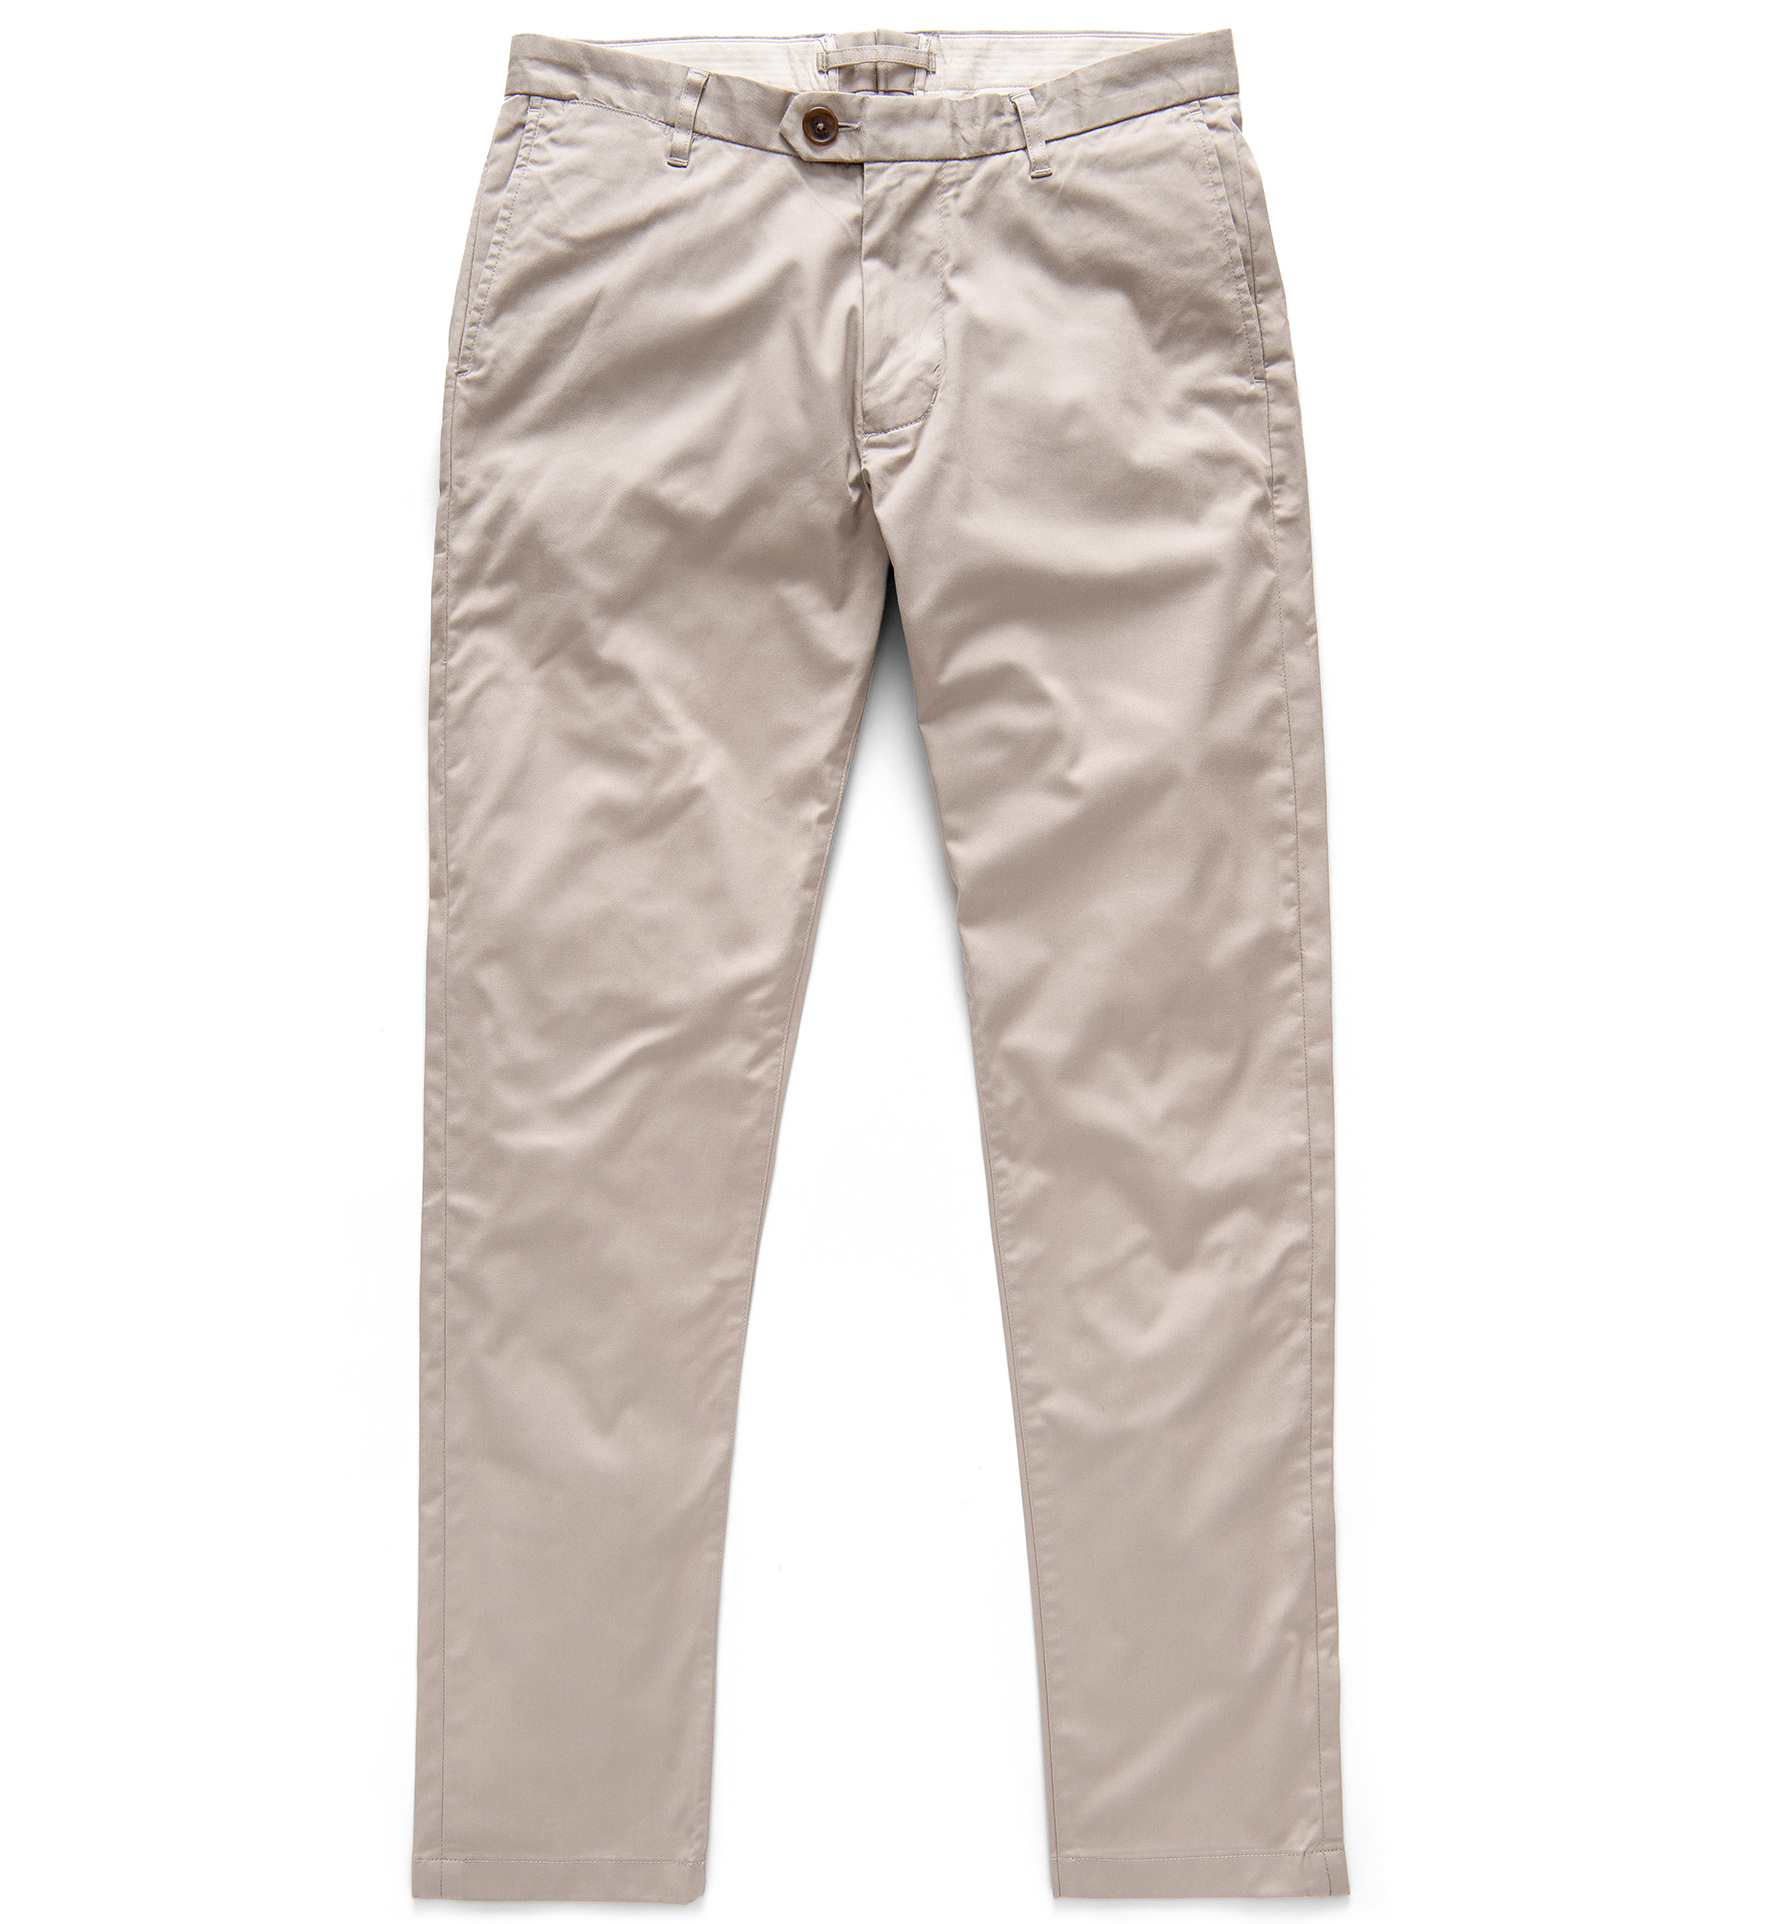 Zoom Image of Bowery Taupe Stretch Supima Cotton Chino